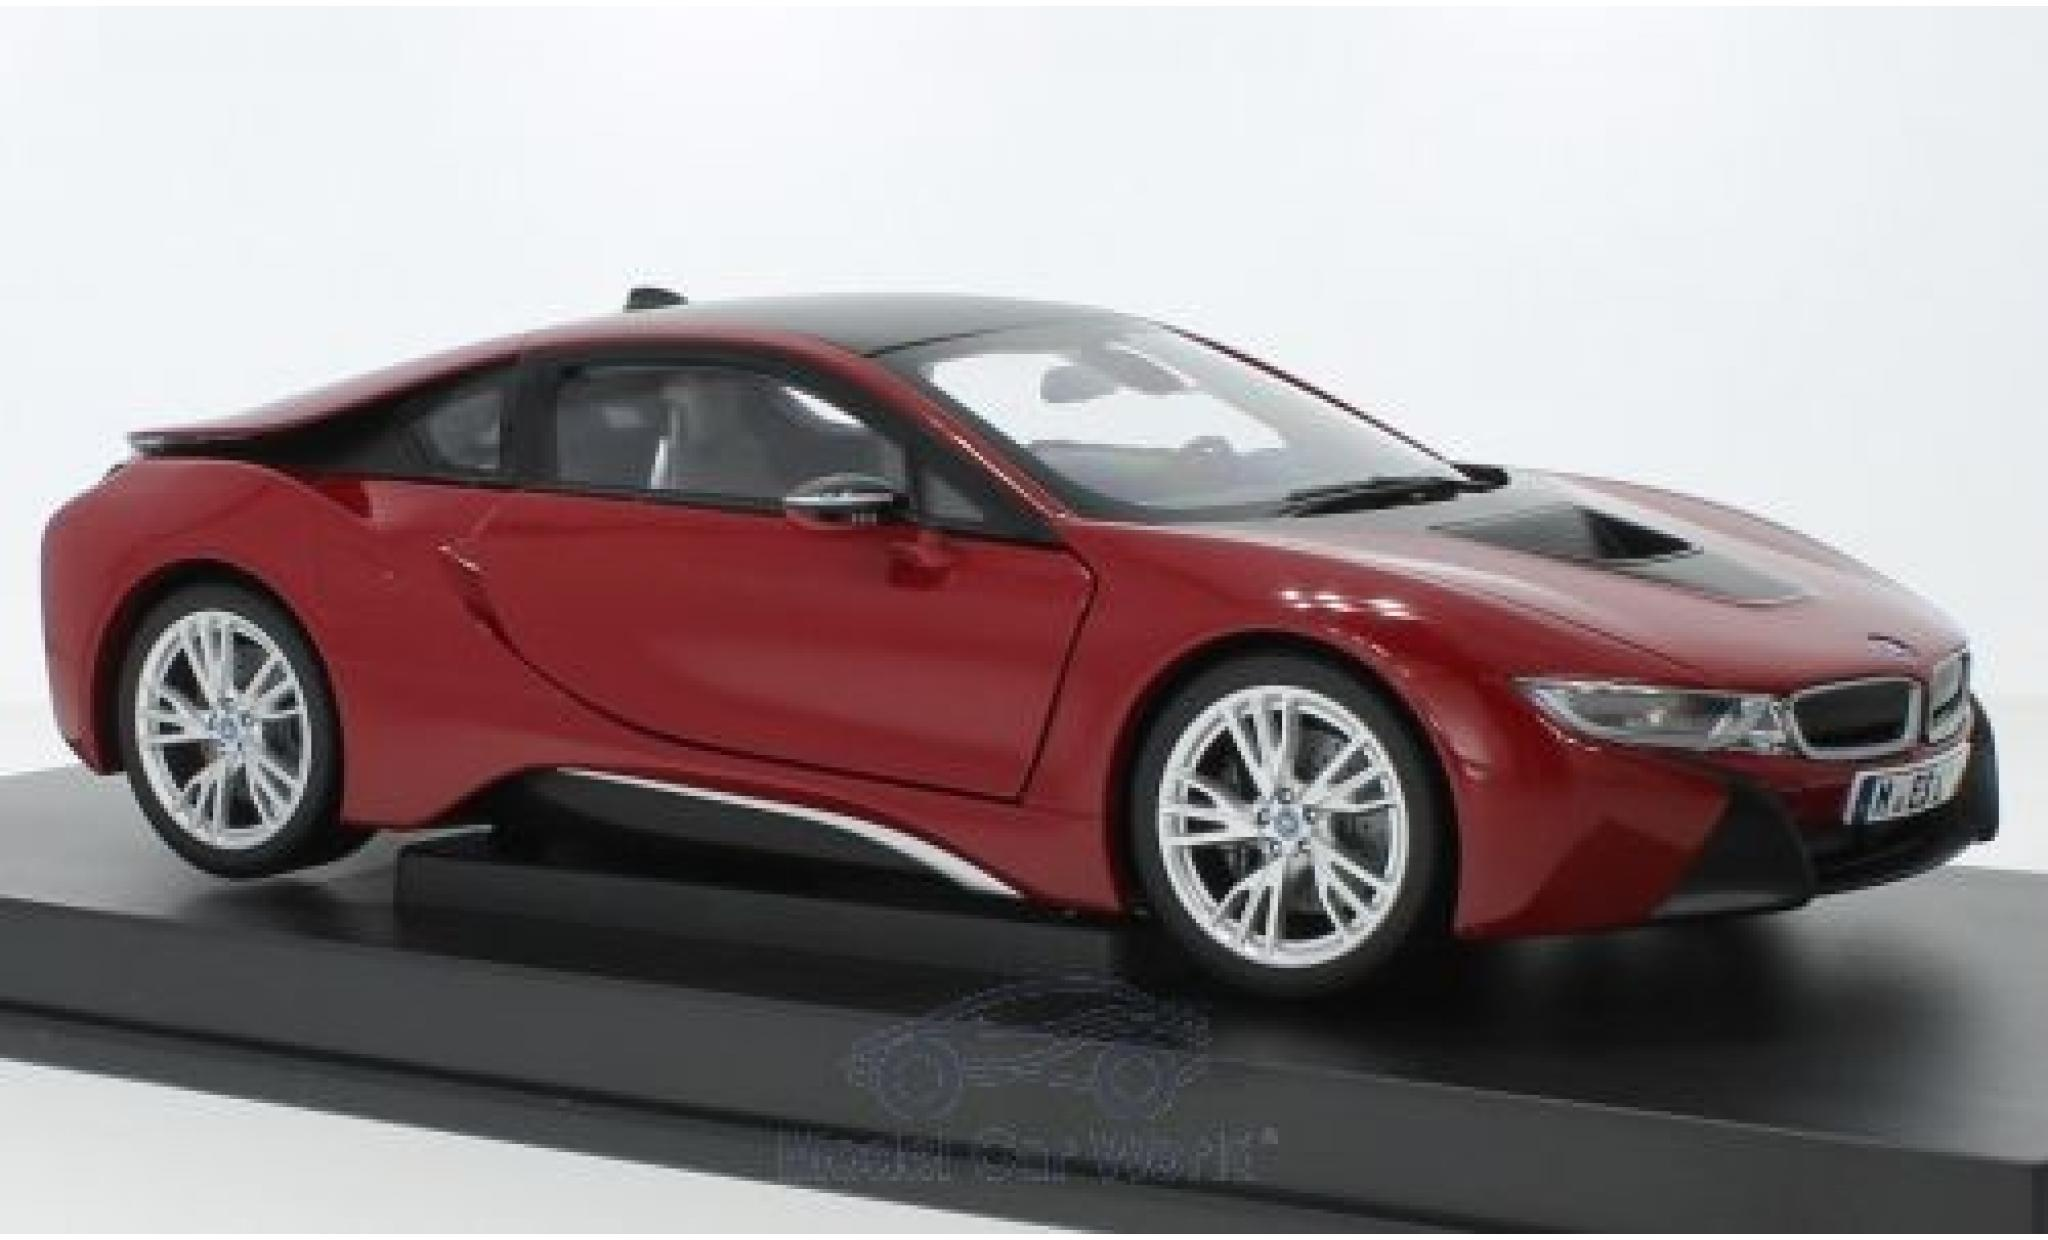 Bmw i8 1/18 Paragon red